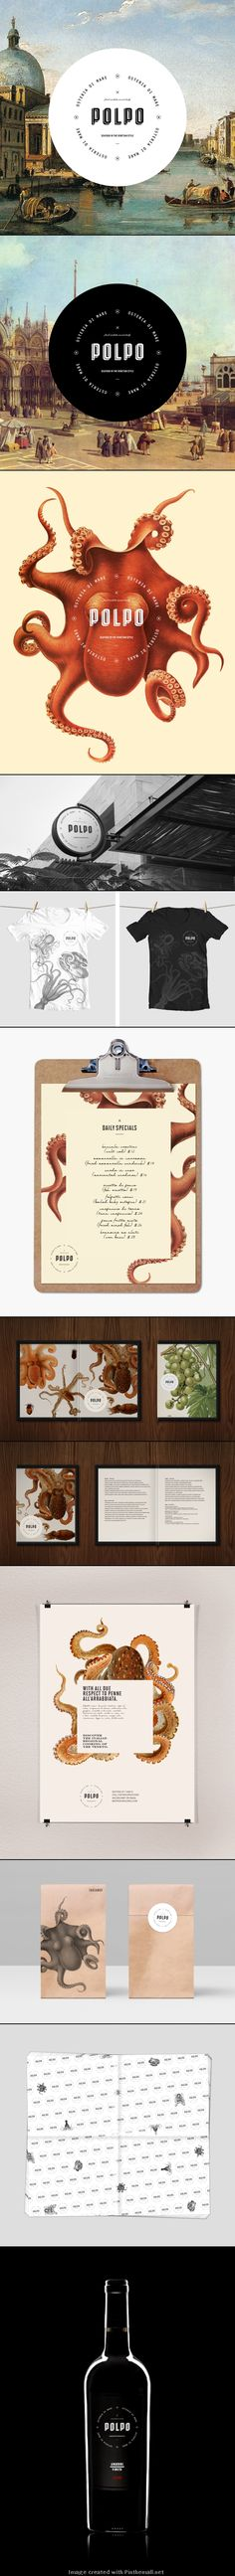 Polpo Restaurant by Richard Marazzi #identity #packaging #branding for all our squid/ octopus loving peeps : ) PD